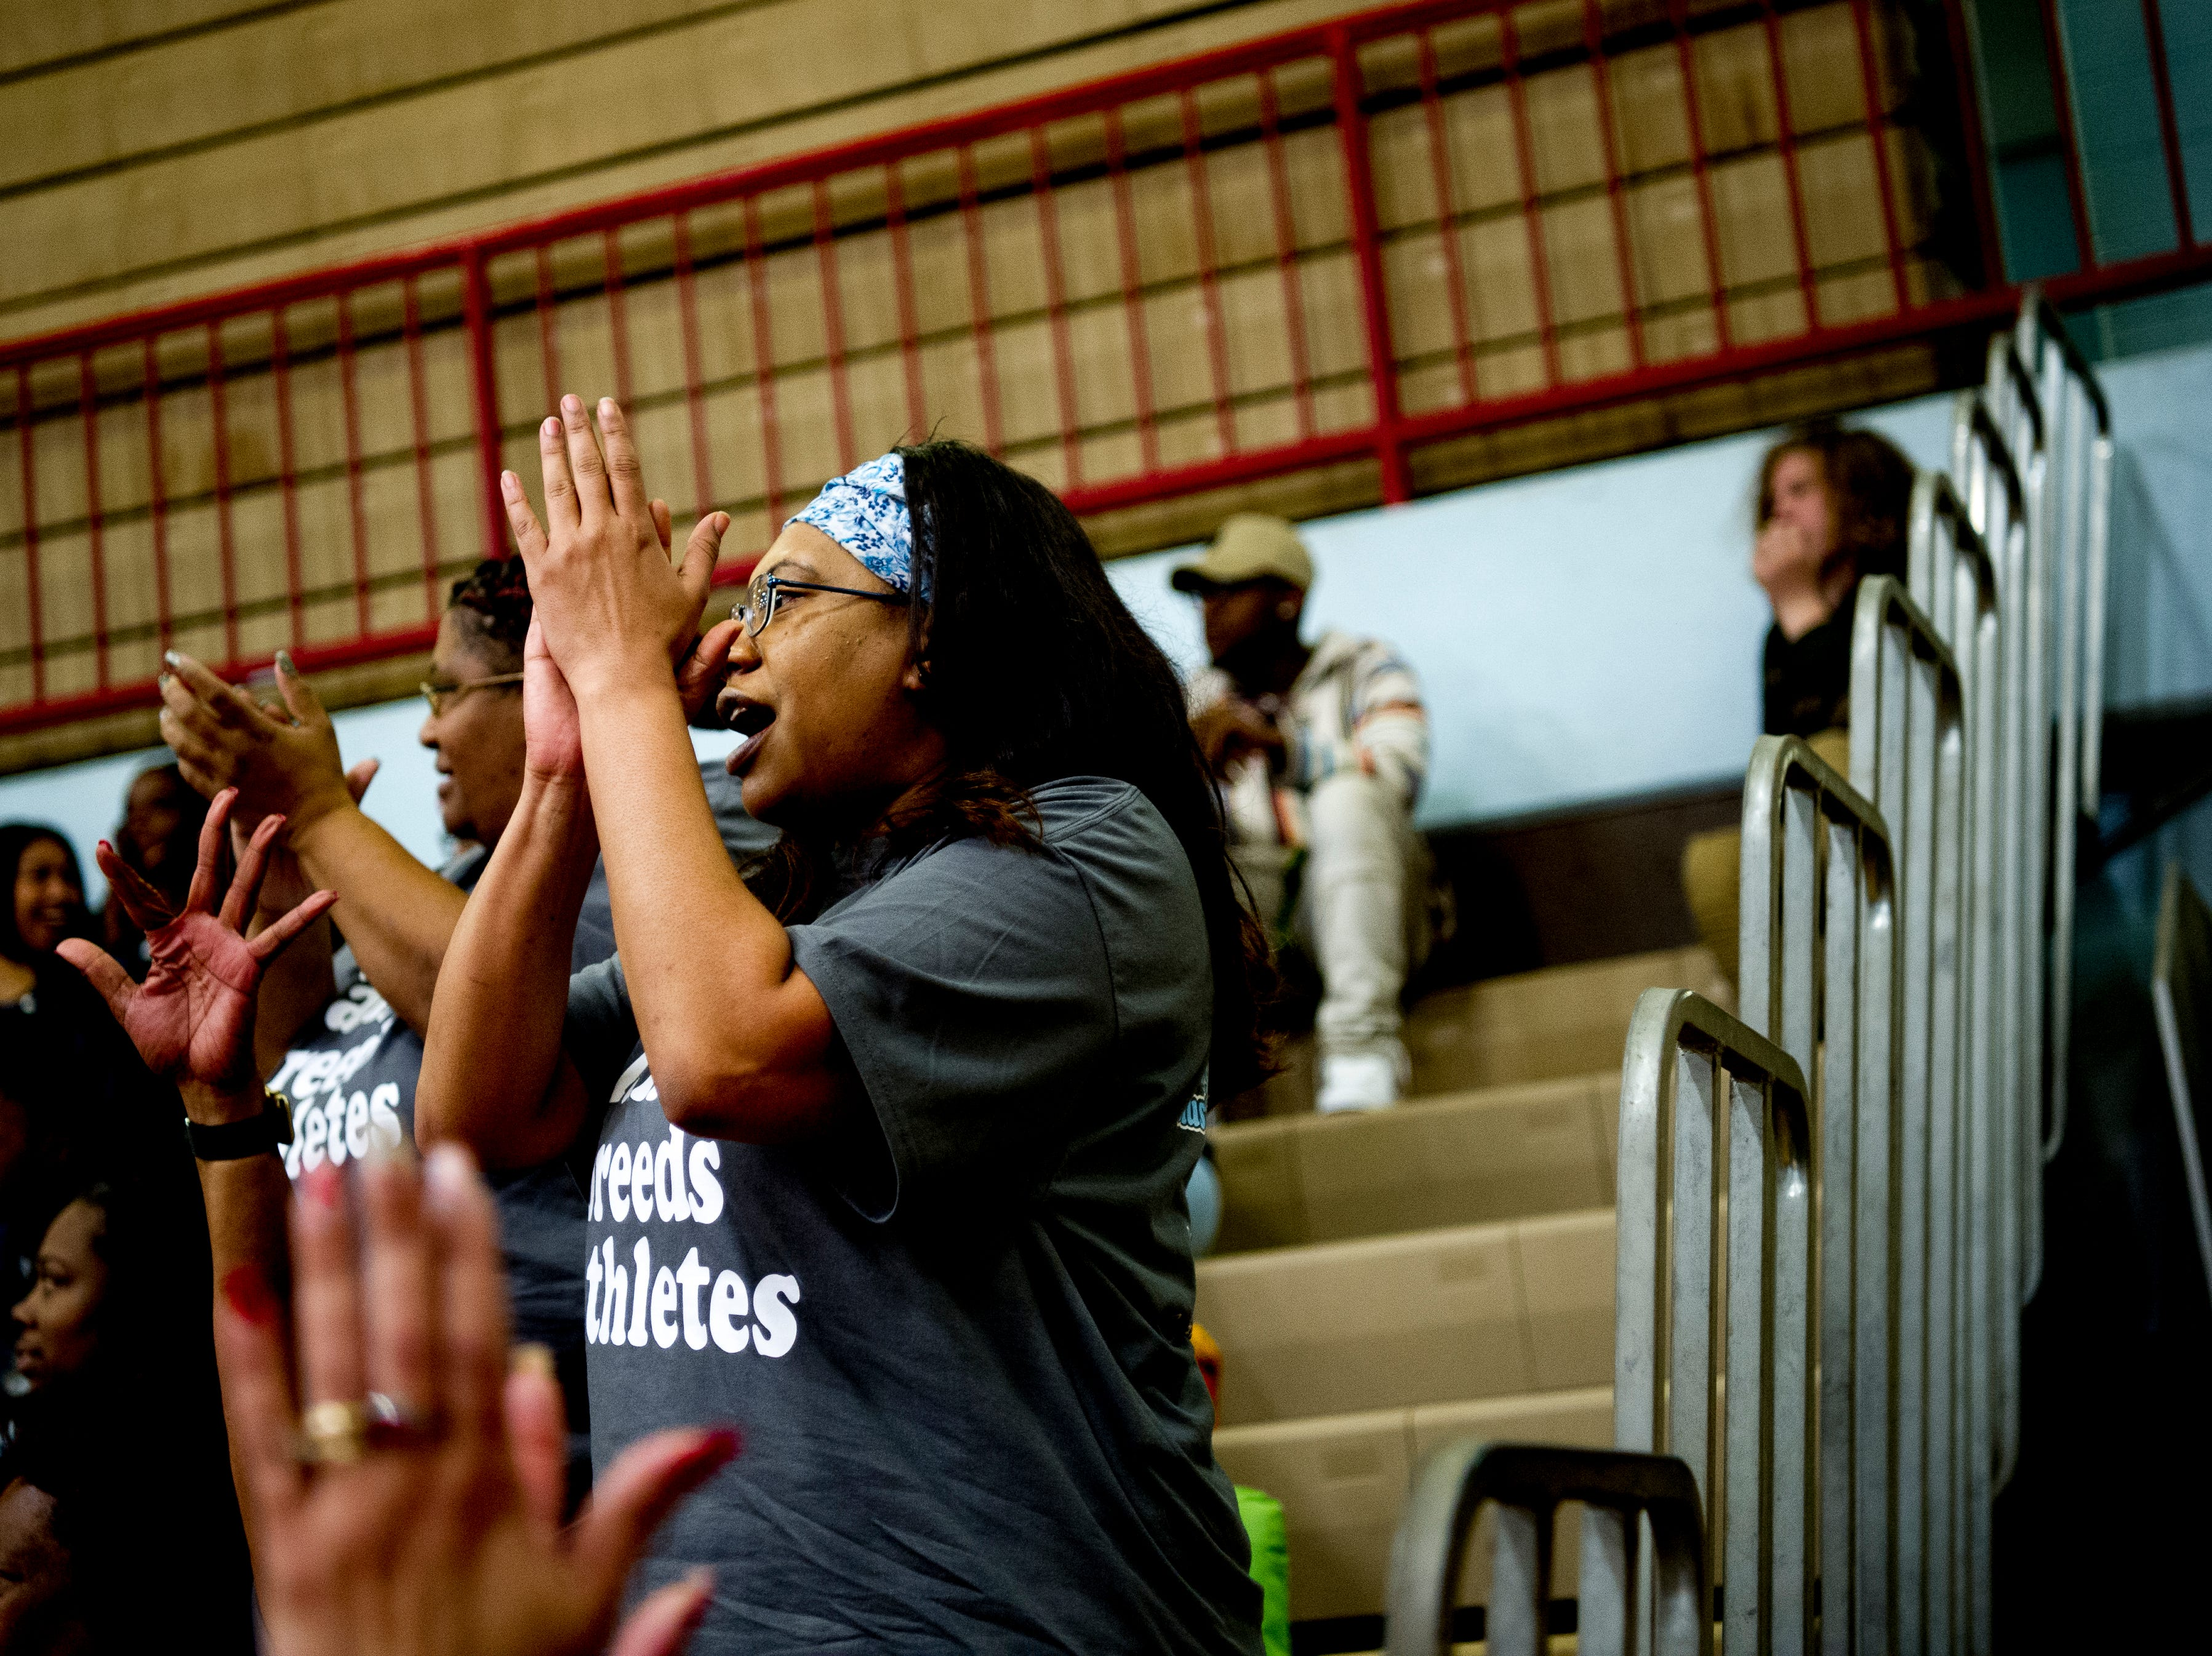 Fans cheer in the stands during a game between Austin-East and Fulton at Austin-East High School in Knoxville, Tennessee on Saturday, January 5, 2019.